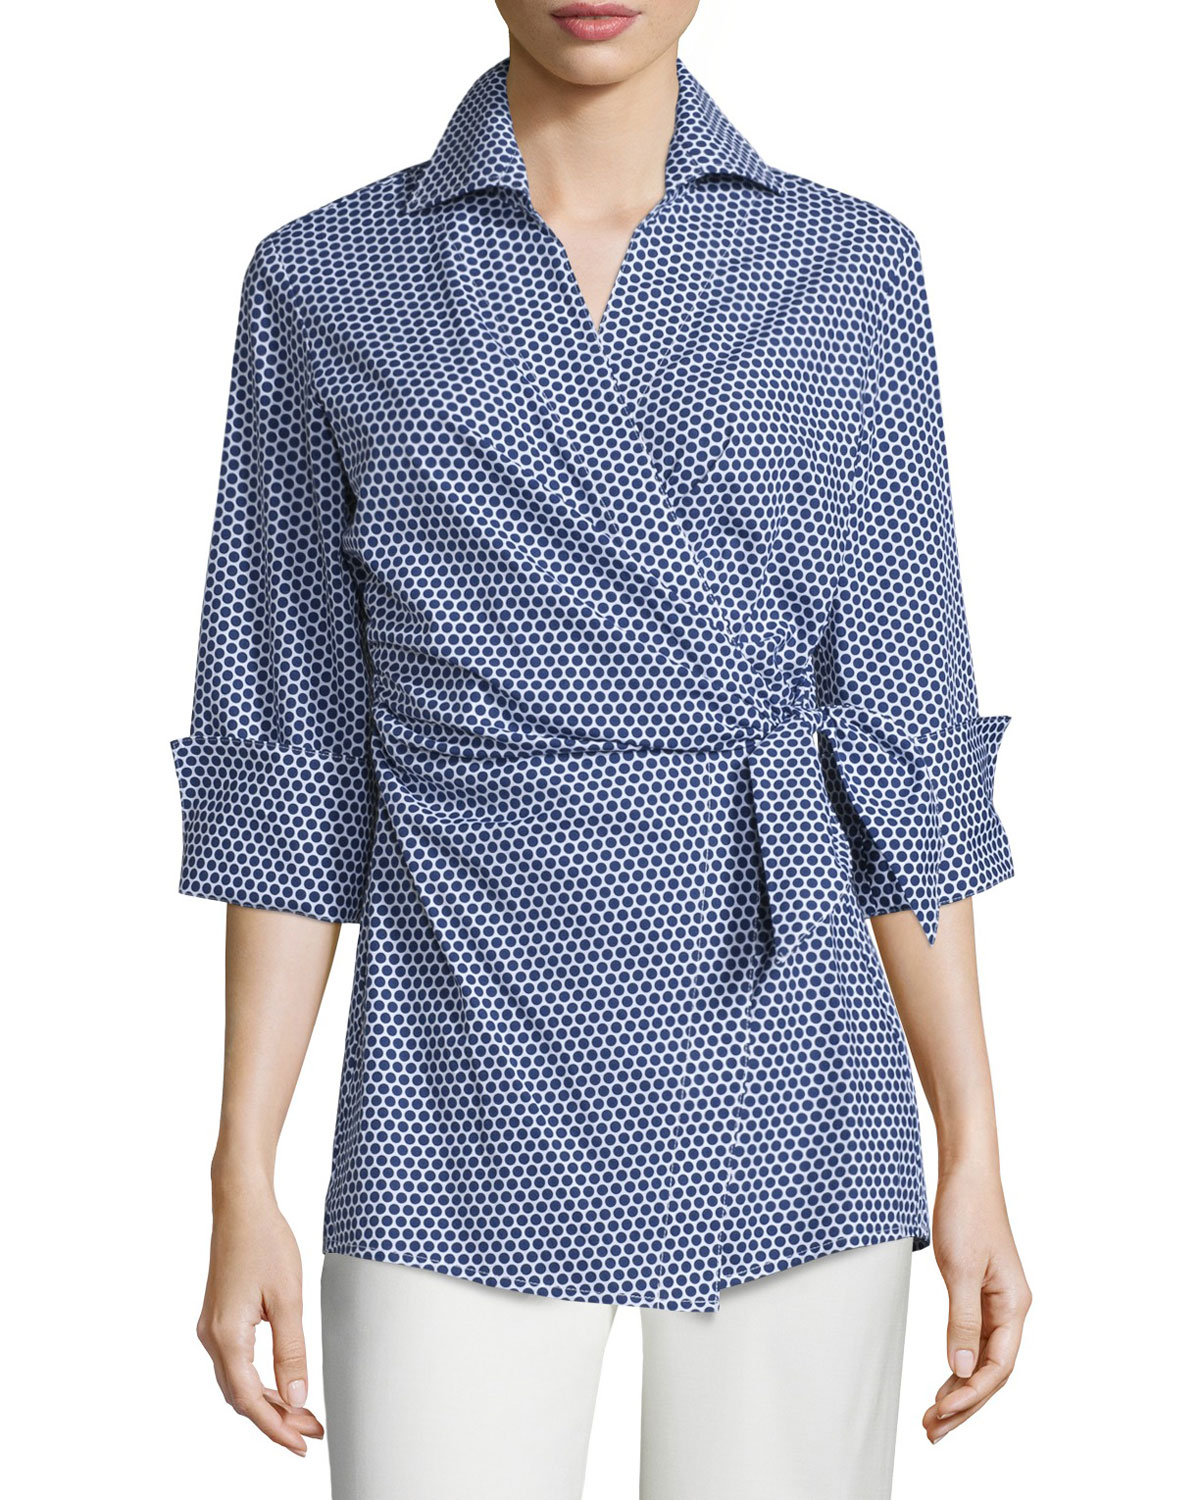 Honeycomb-Dot Wrap Blouse, Navy/White